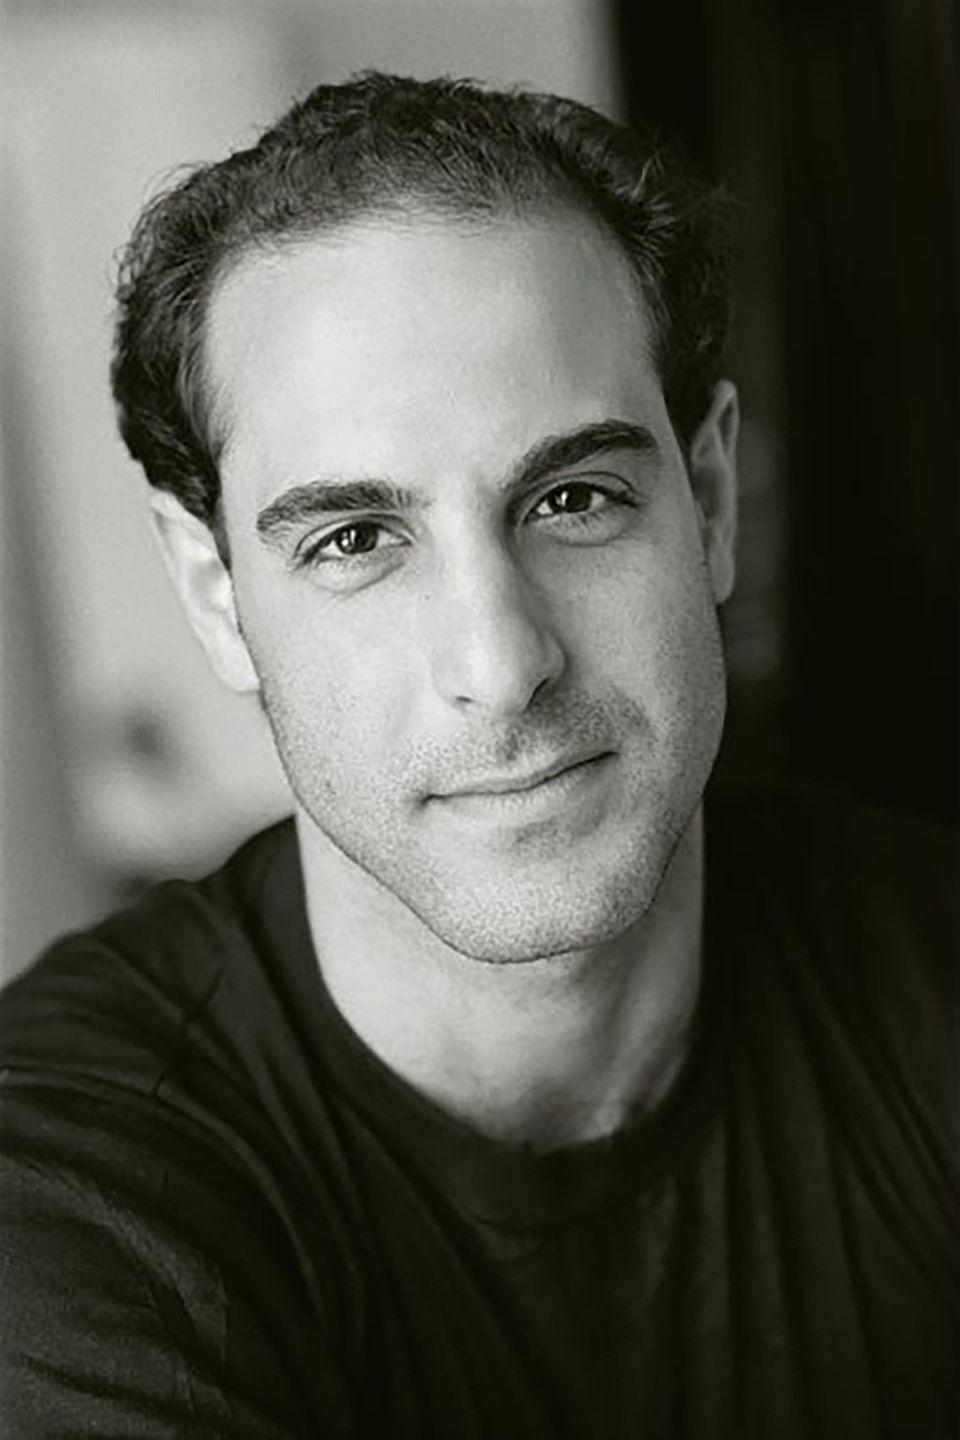 <p>After attending SUNY Purchase, Stanley Tucci headed to Broadway and landed roles in major films like <em>Prizzi's Honor</em>. Tucci received his first nomination for an Academy Award in 2010 for his chilling role in <em>The</em> <em>Lovely Bones</em>, but had been a household name long before then.</p>